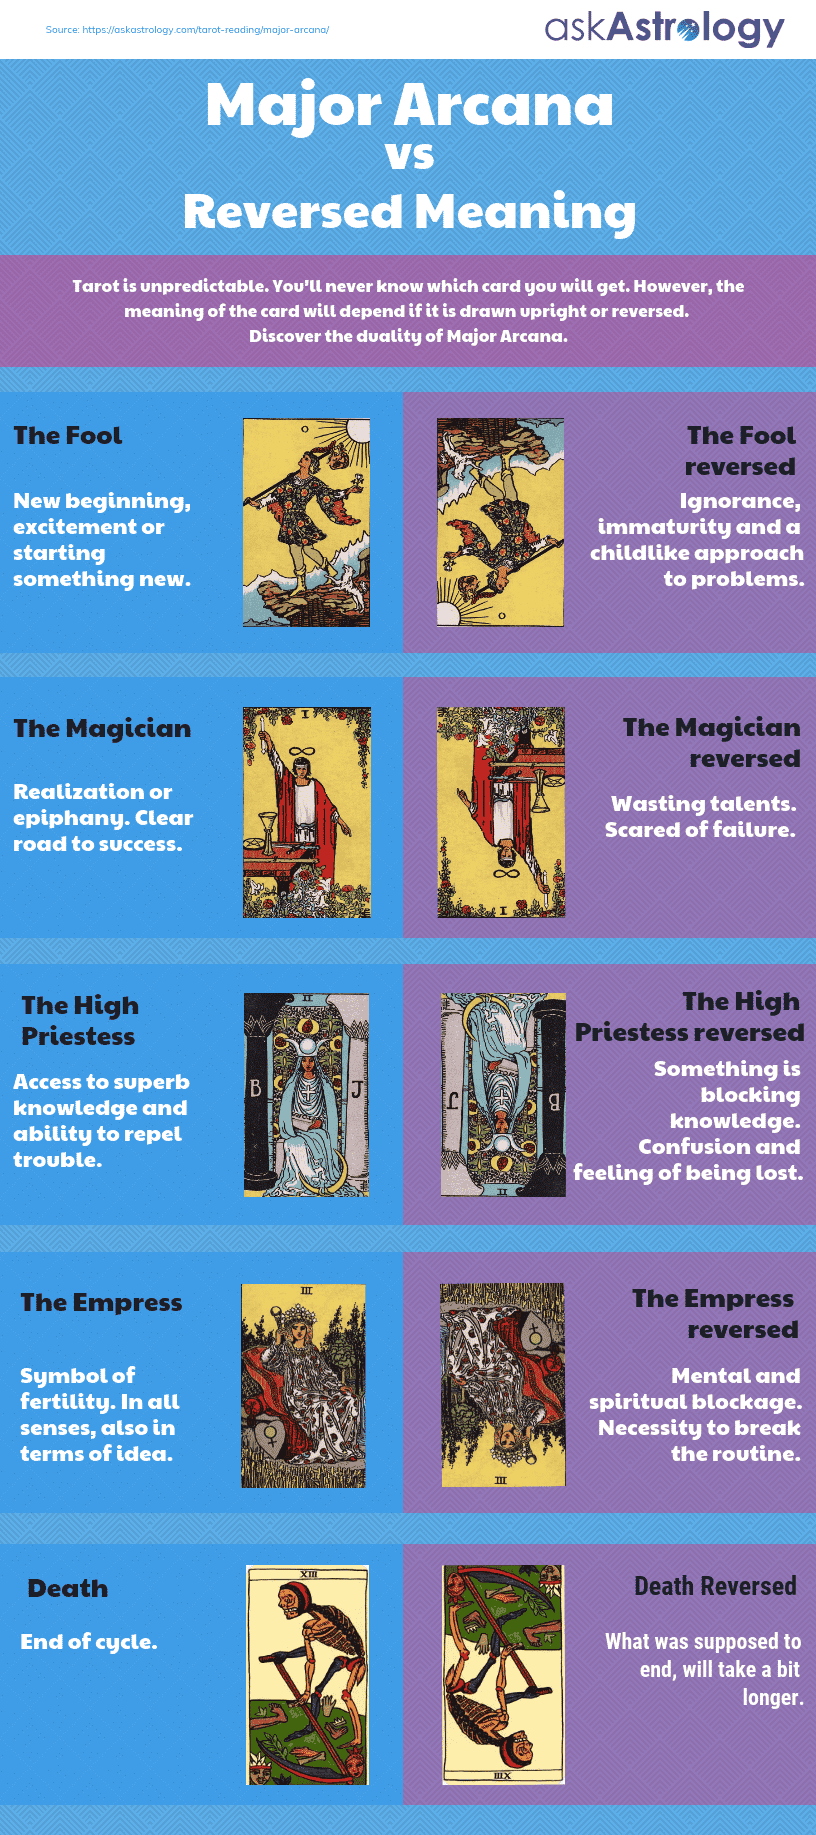 Upright vs Reversed Meaning Major Arcana